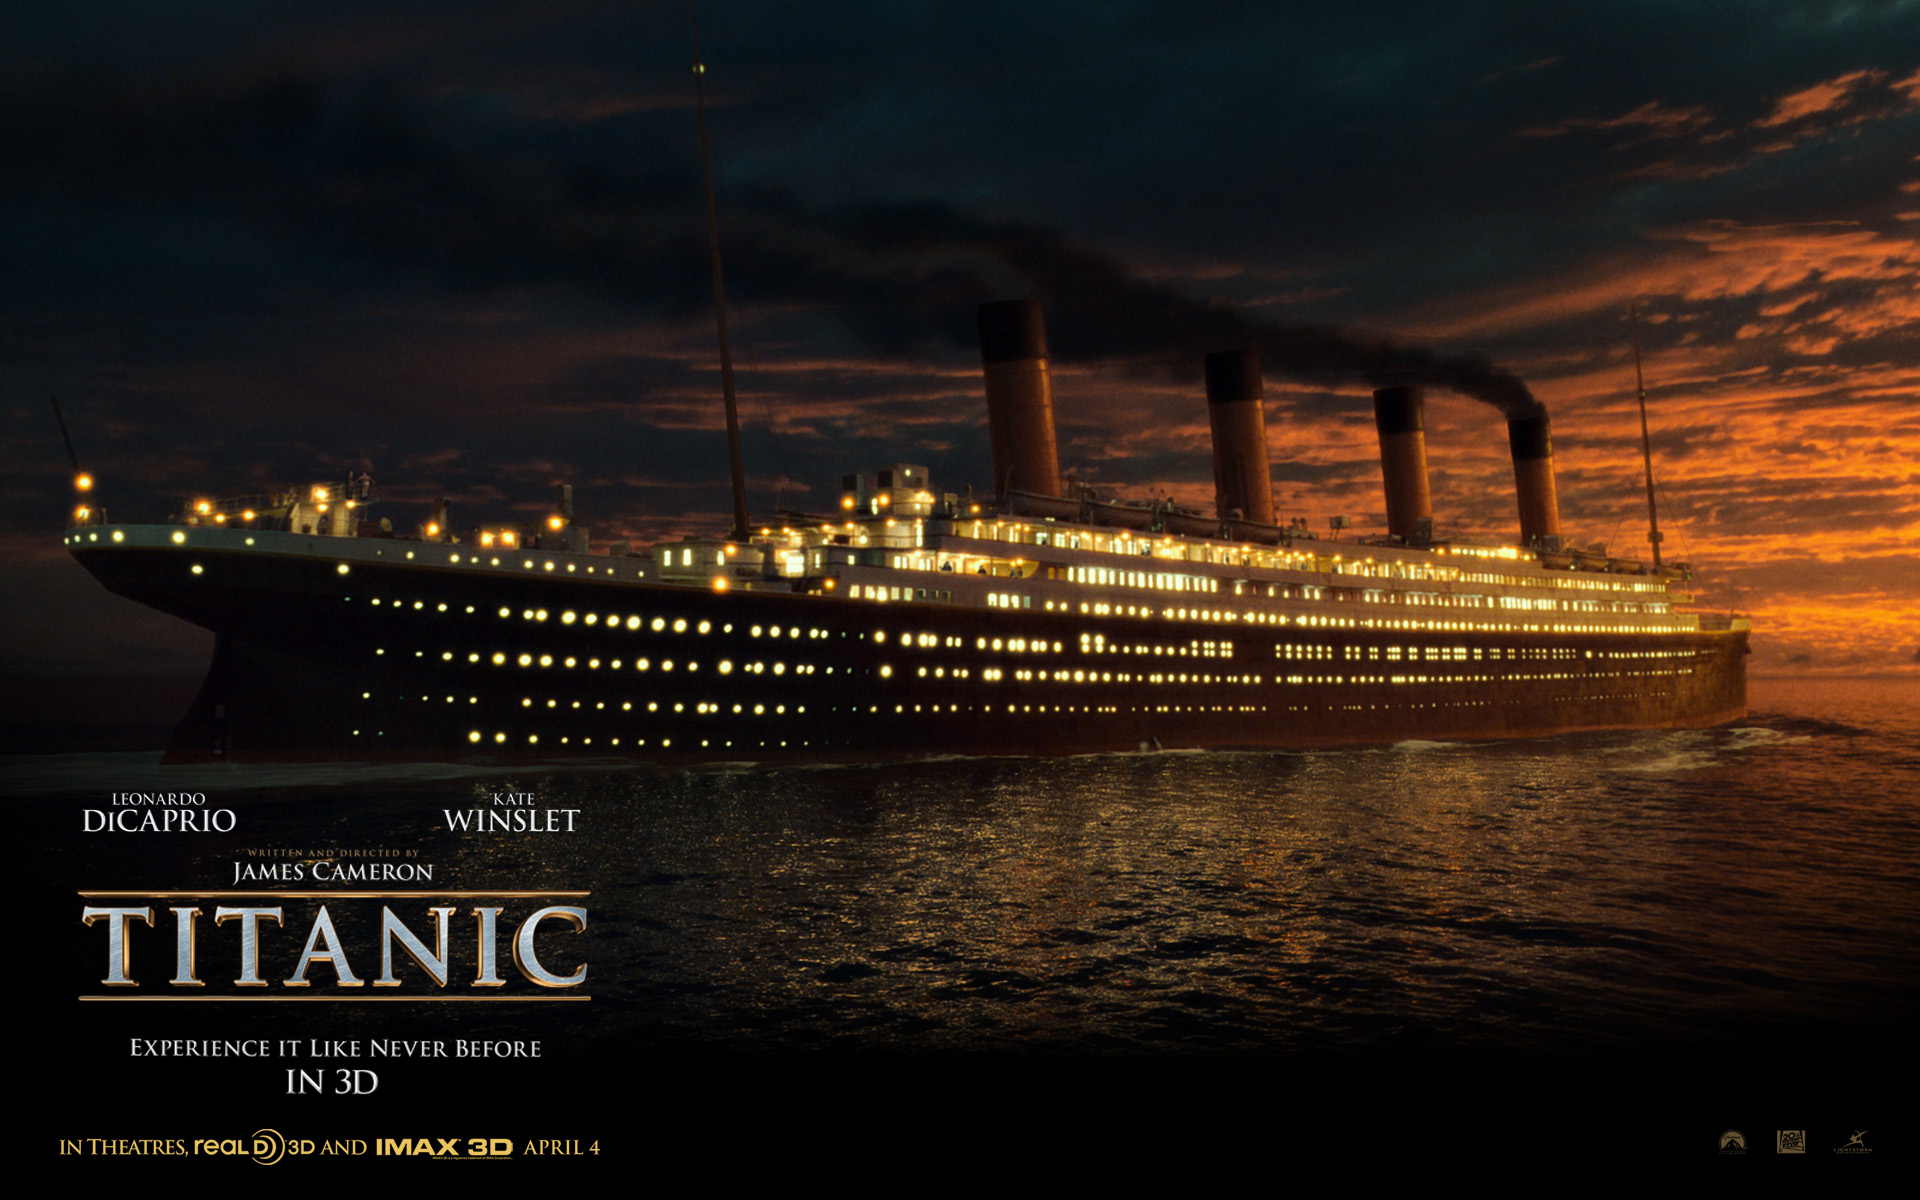 Fast And Furious 3 Full Movie >> Titanic images Titanic 3D Movie Walpapers HD wallpaper and background photos (29240497)